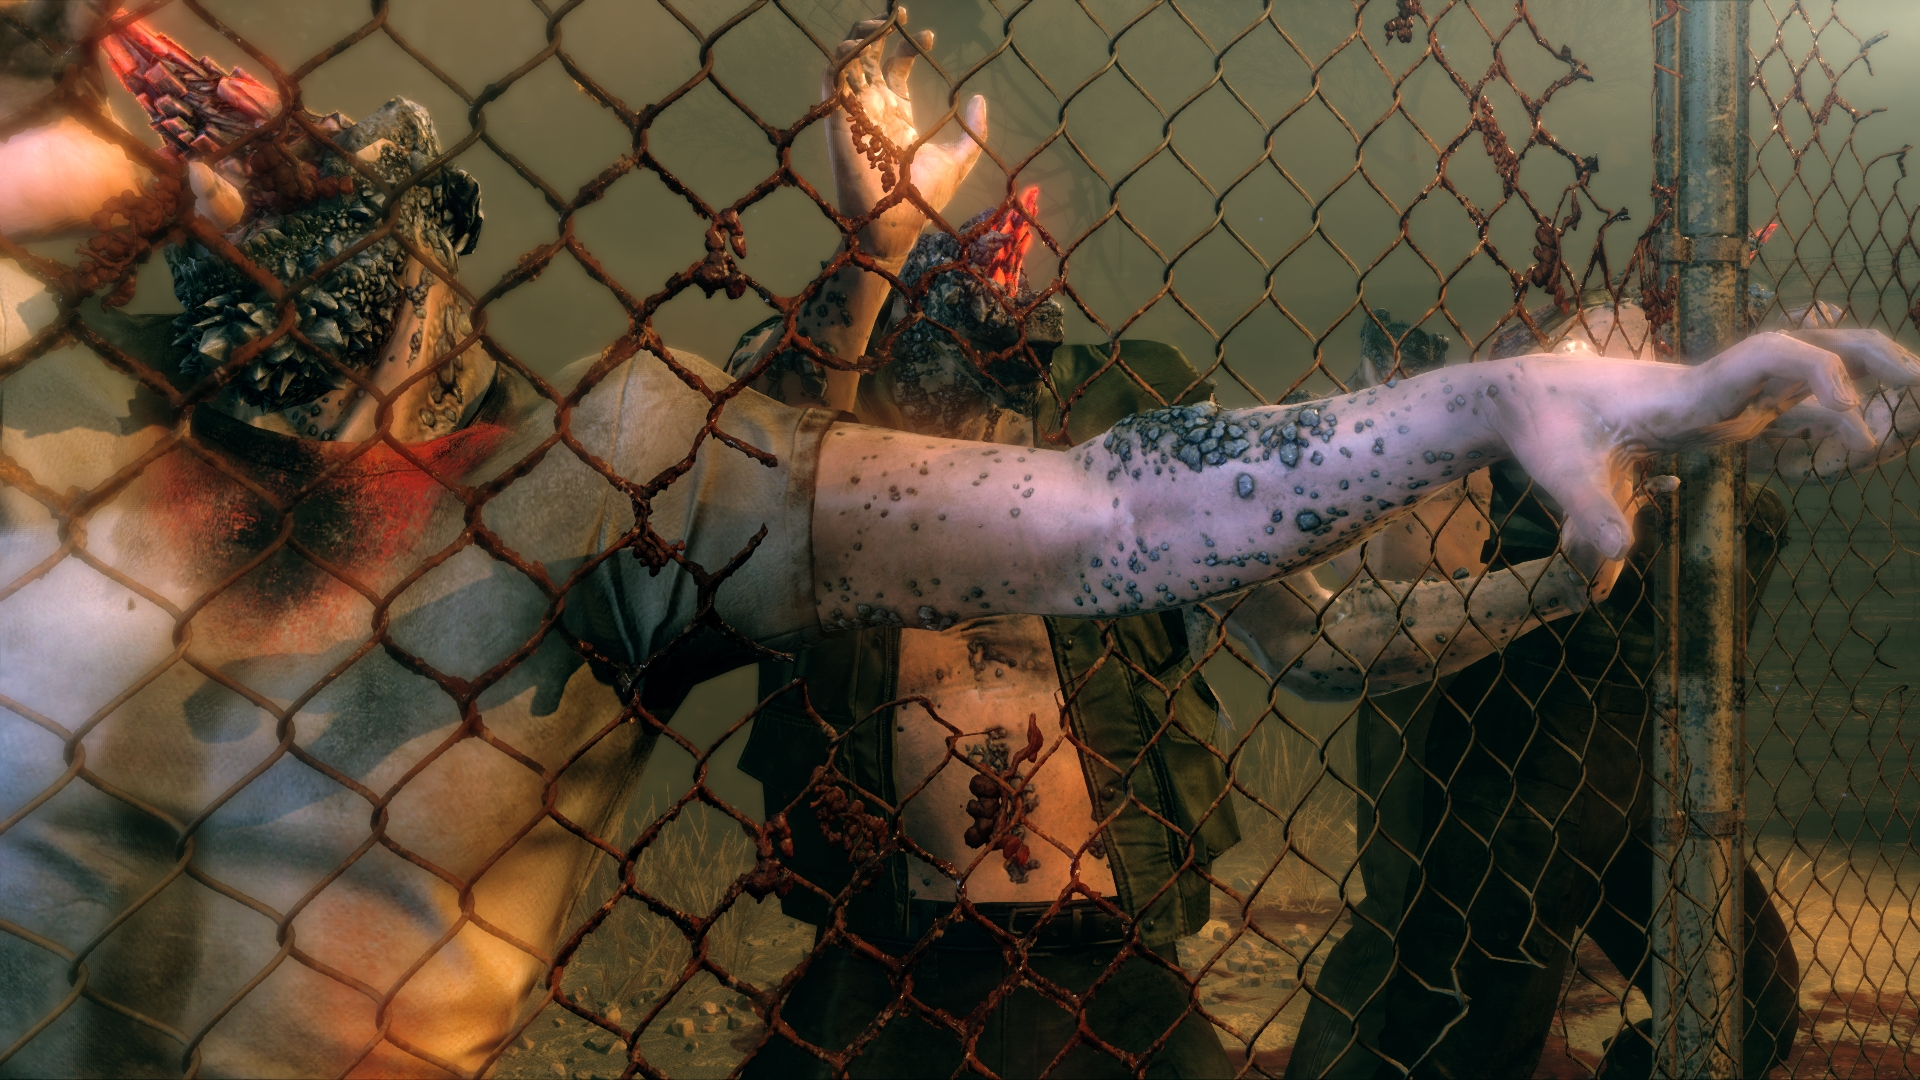 Now you can check out Metal Gear Survive for yourself